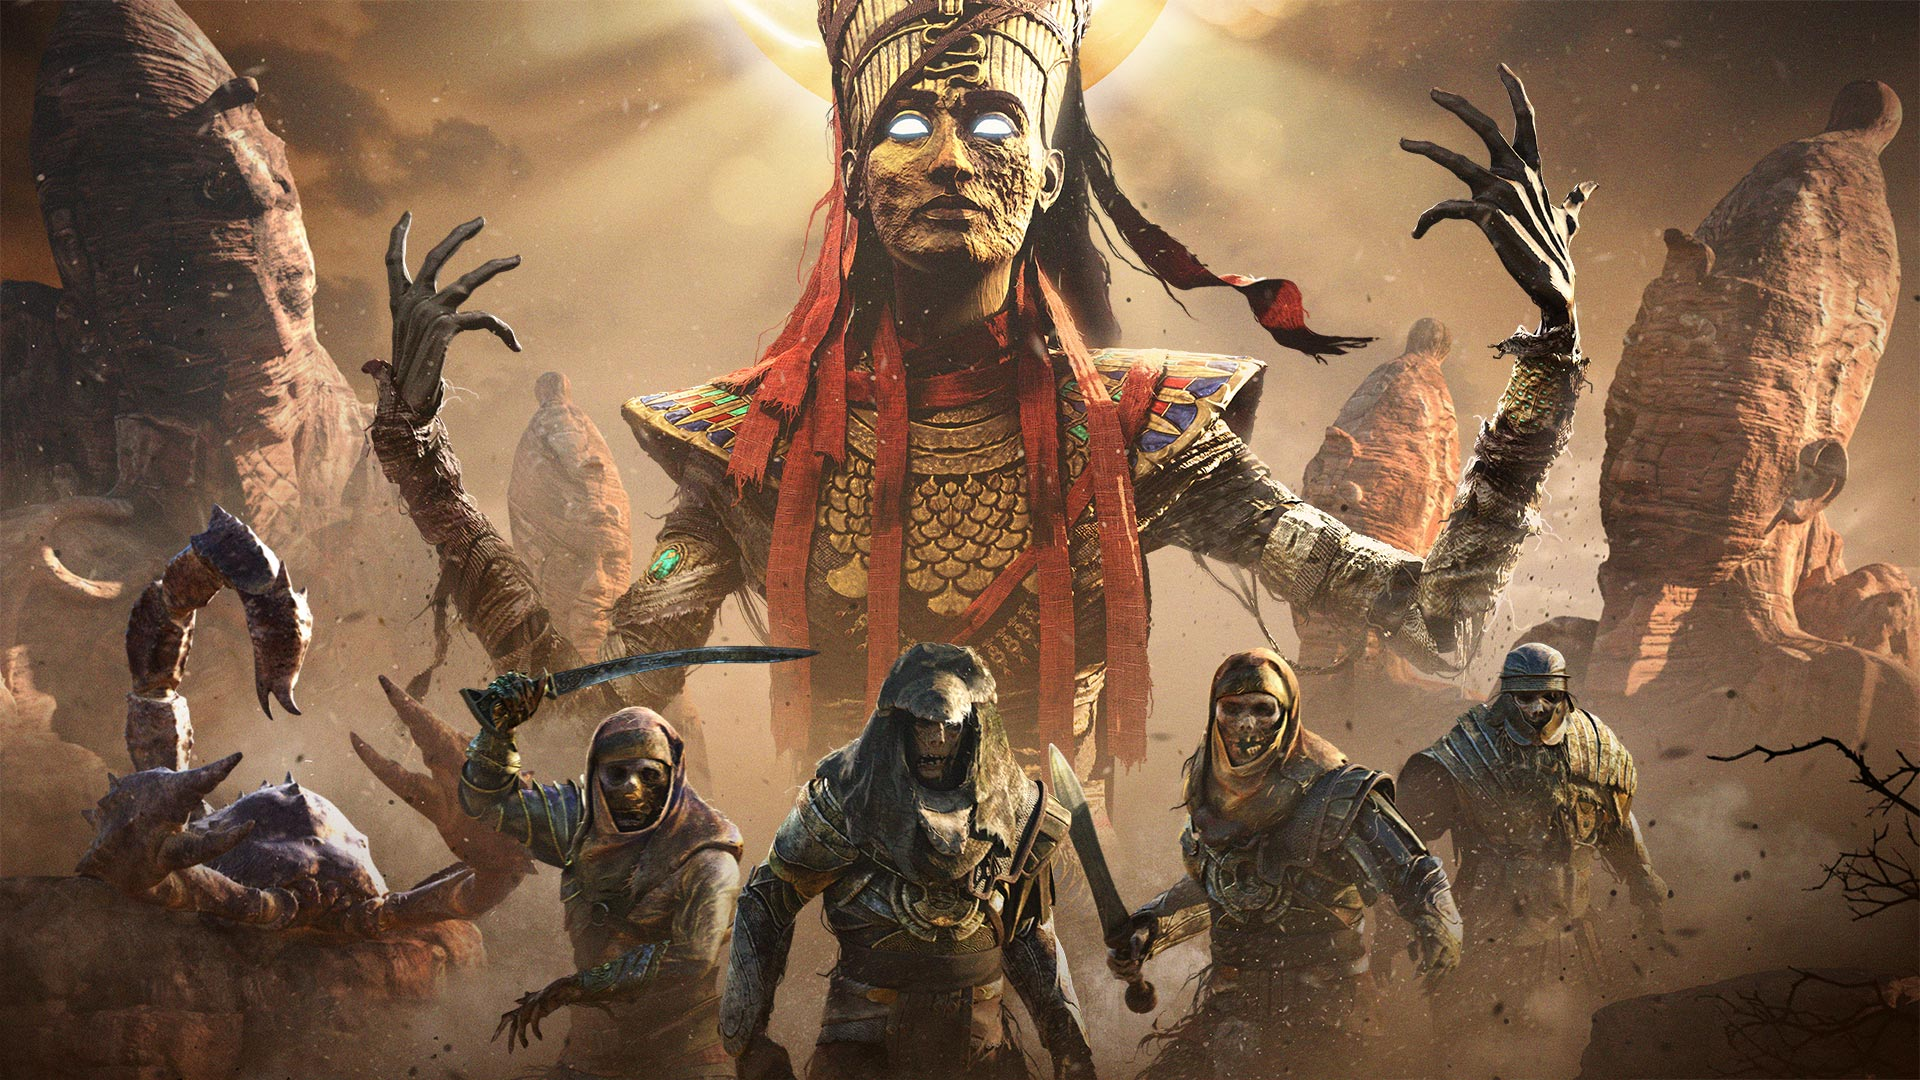 https://ubistatic19-a.akamaihd.net/resource/en-gb/game/assassins-creed/ac-origins/ac_seaons_pass_dlc2_full_303433.jpg